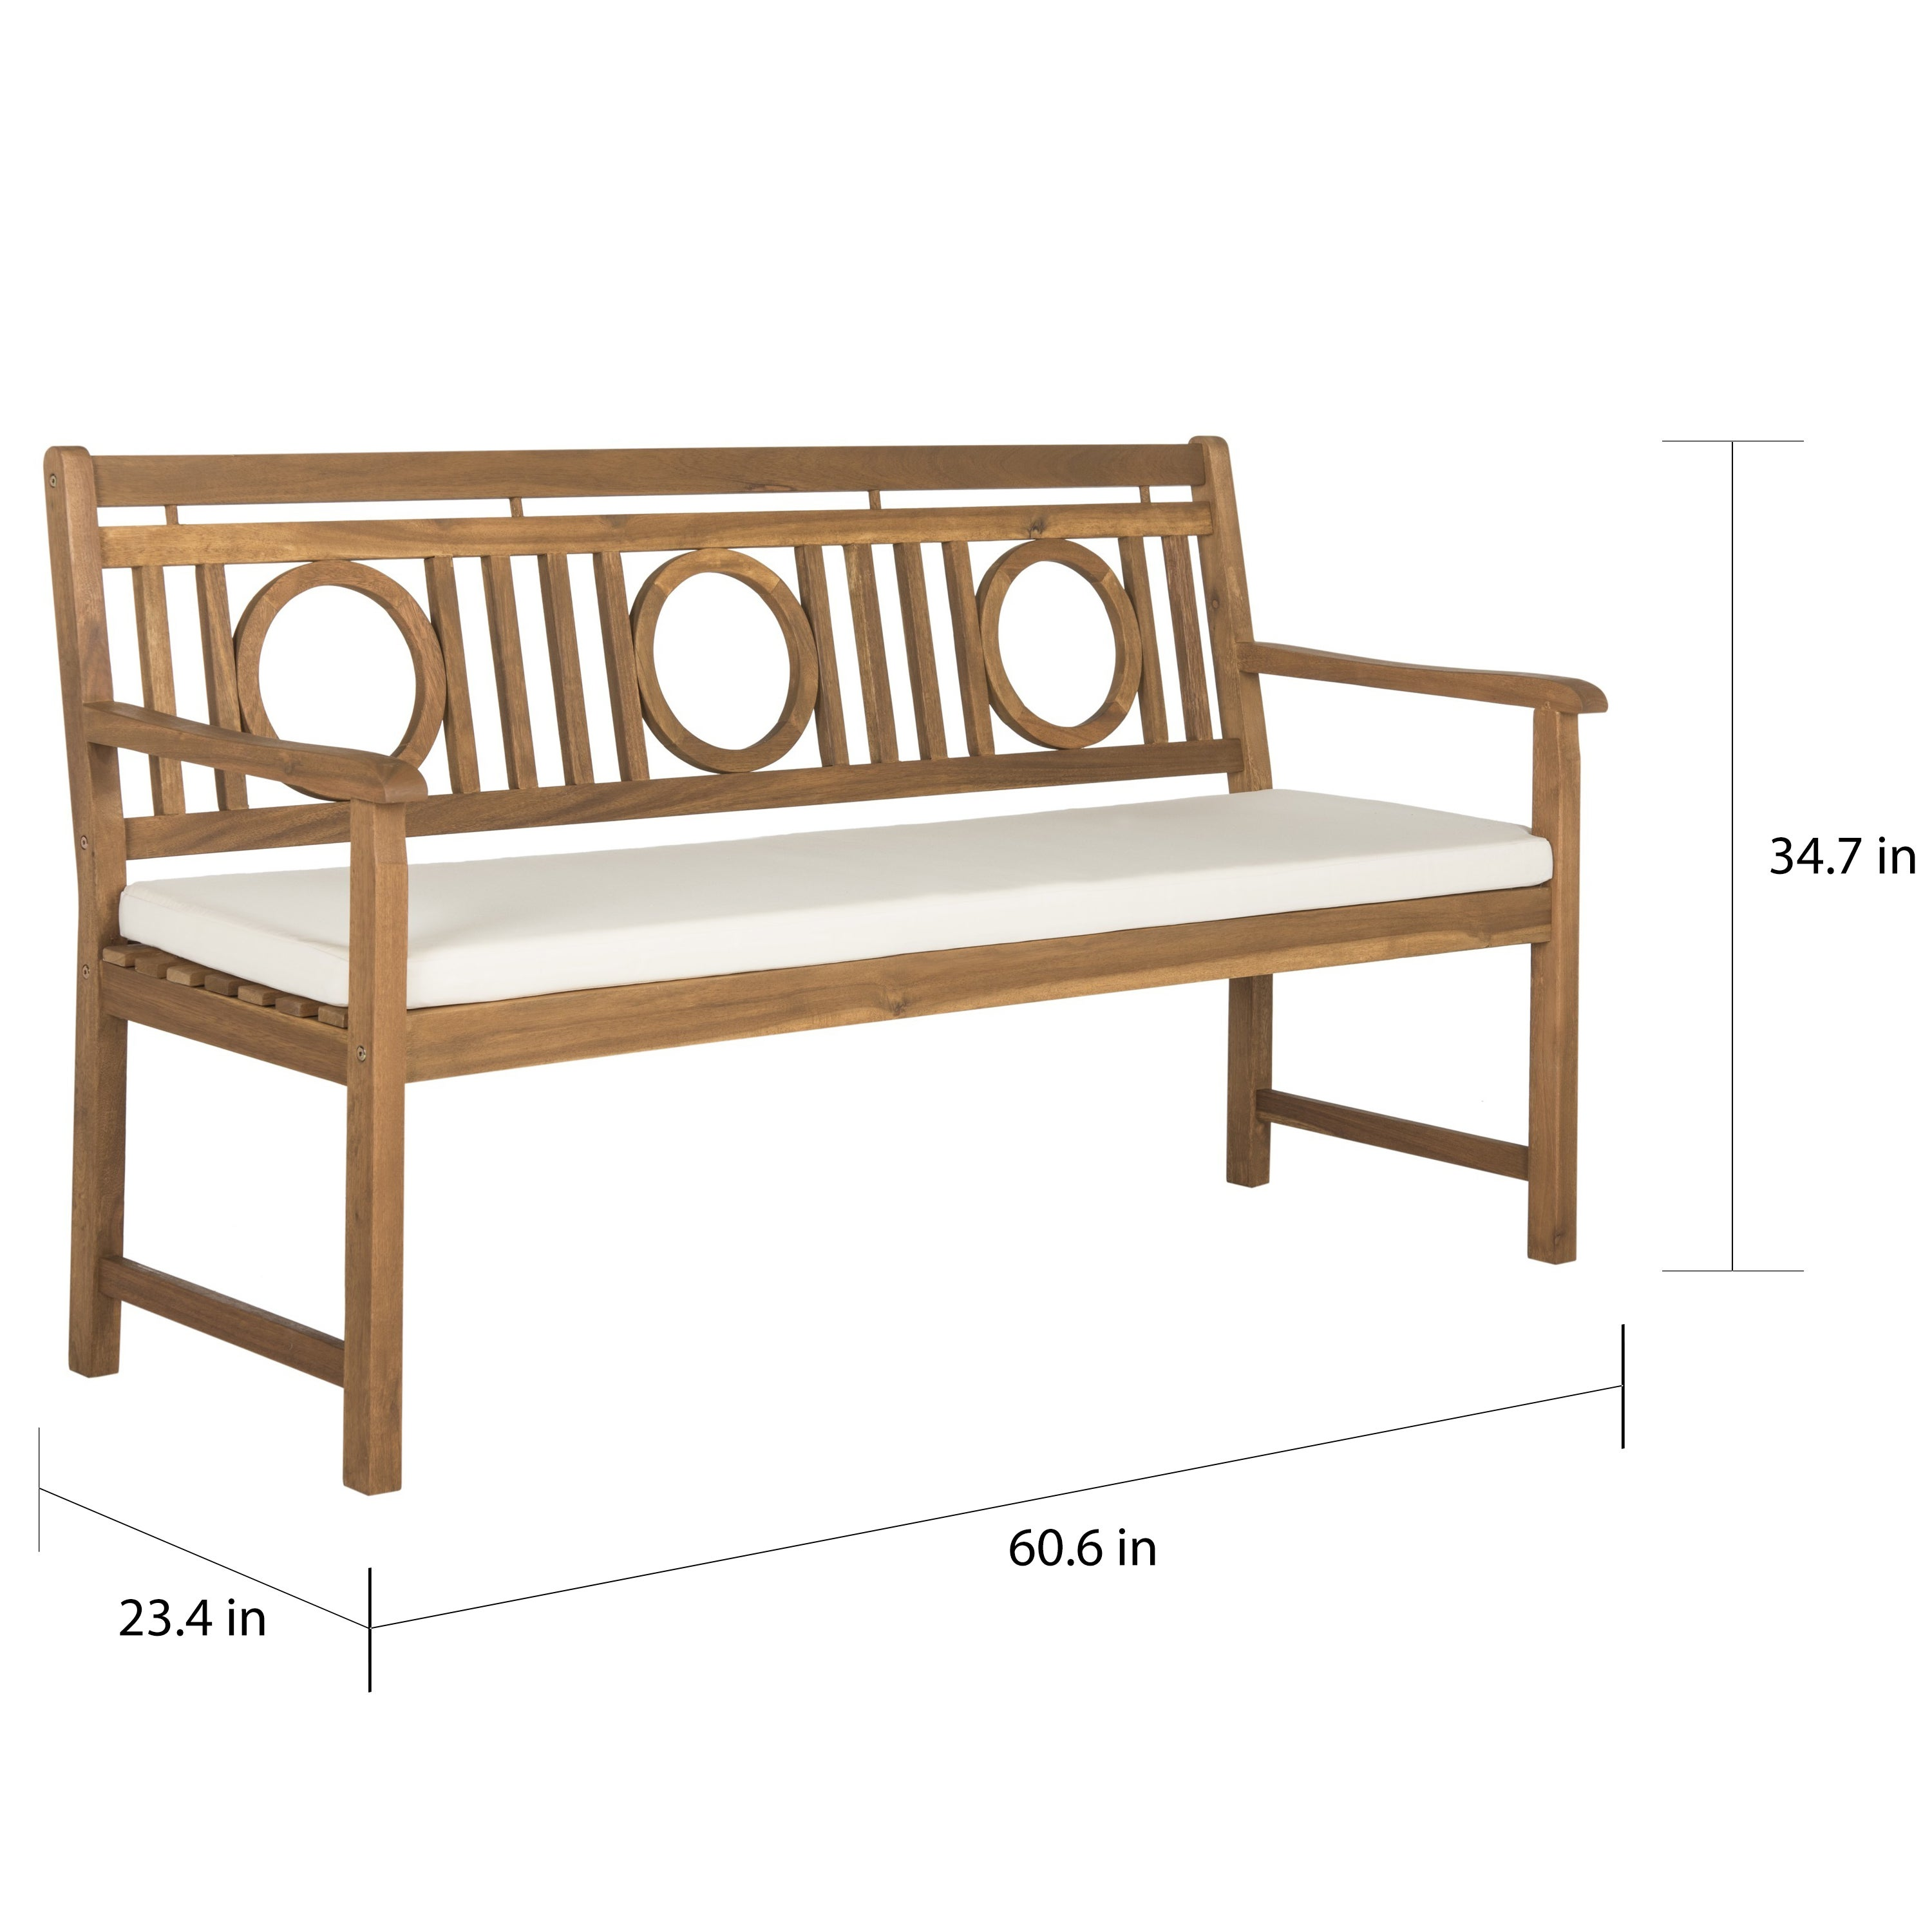 Safavieh Montclair Outdoor Brown/ Beige 3 Seat Bench   Free Shipping Today    Overstock.com   18324100